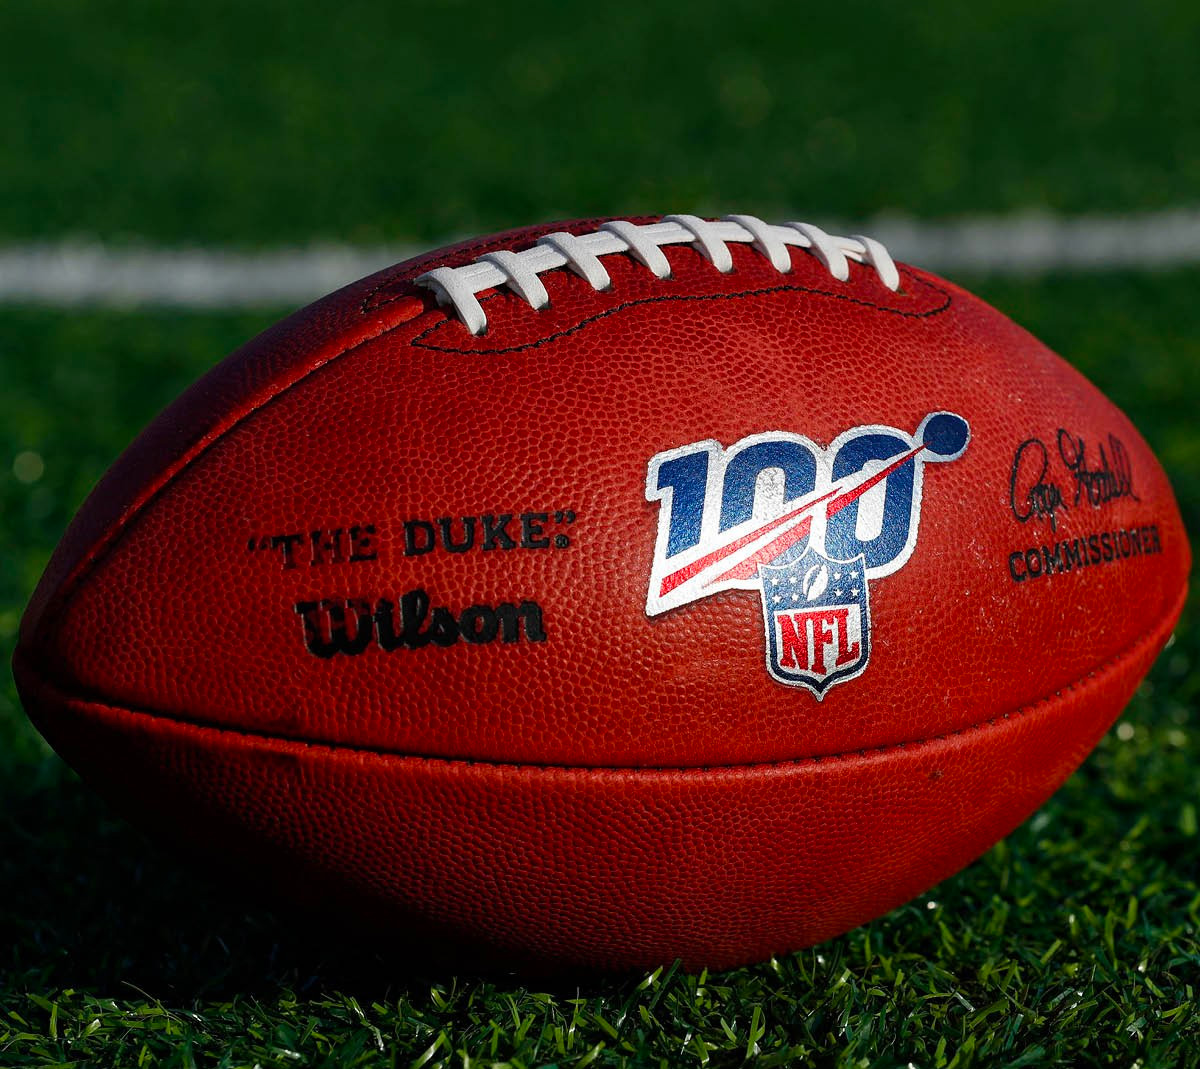 Wilson & NFL Celebrate 100 Years of Pro Football with NFL 100 The Duke Ball at werd.com